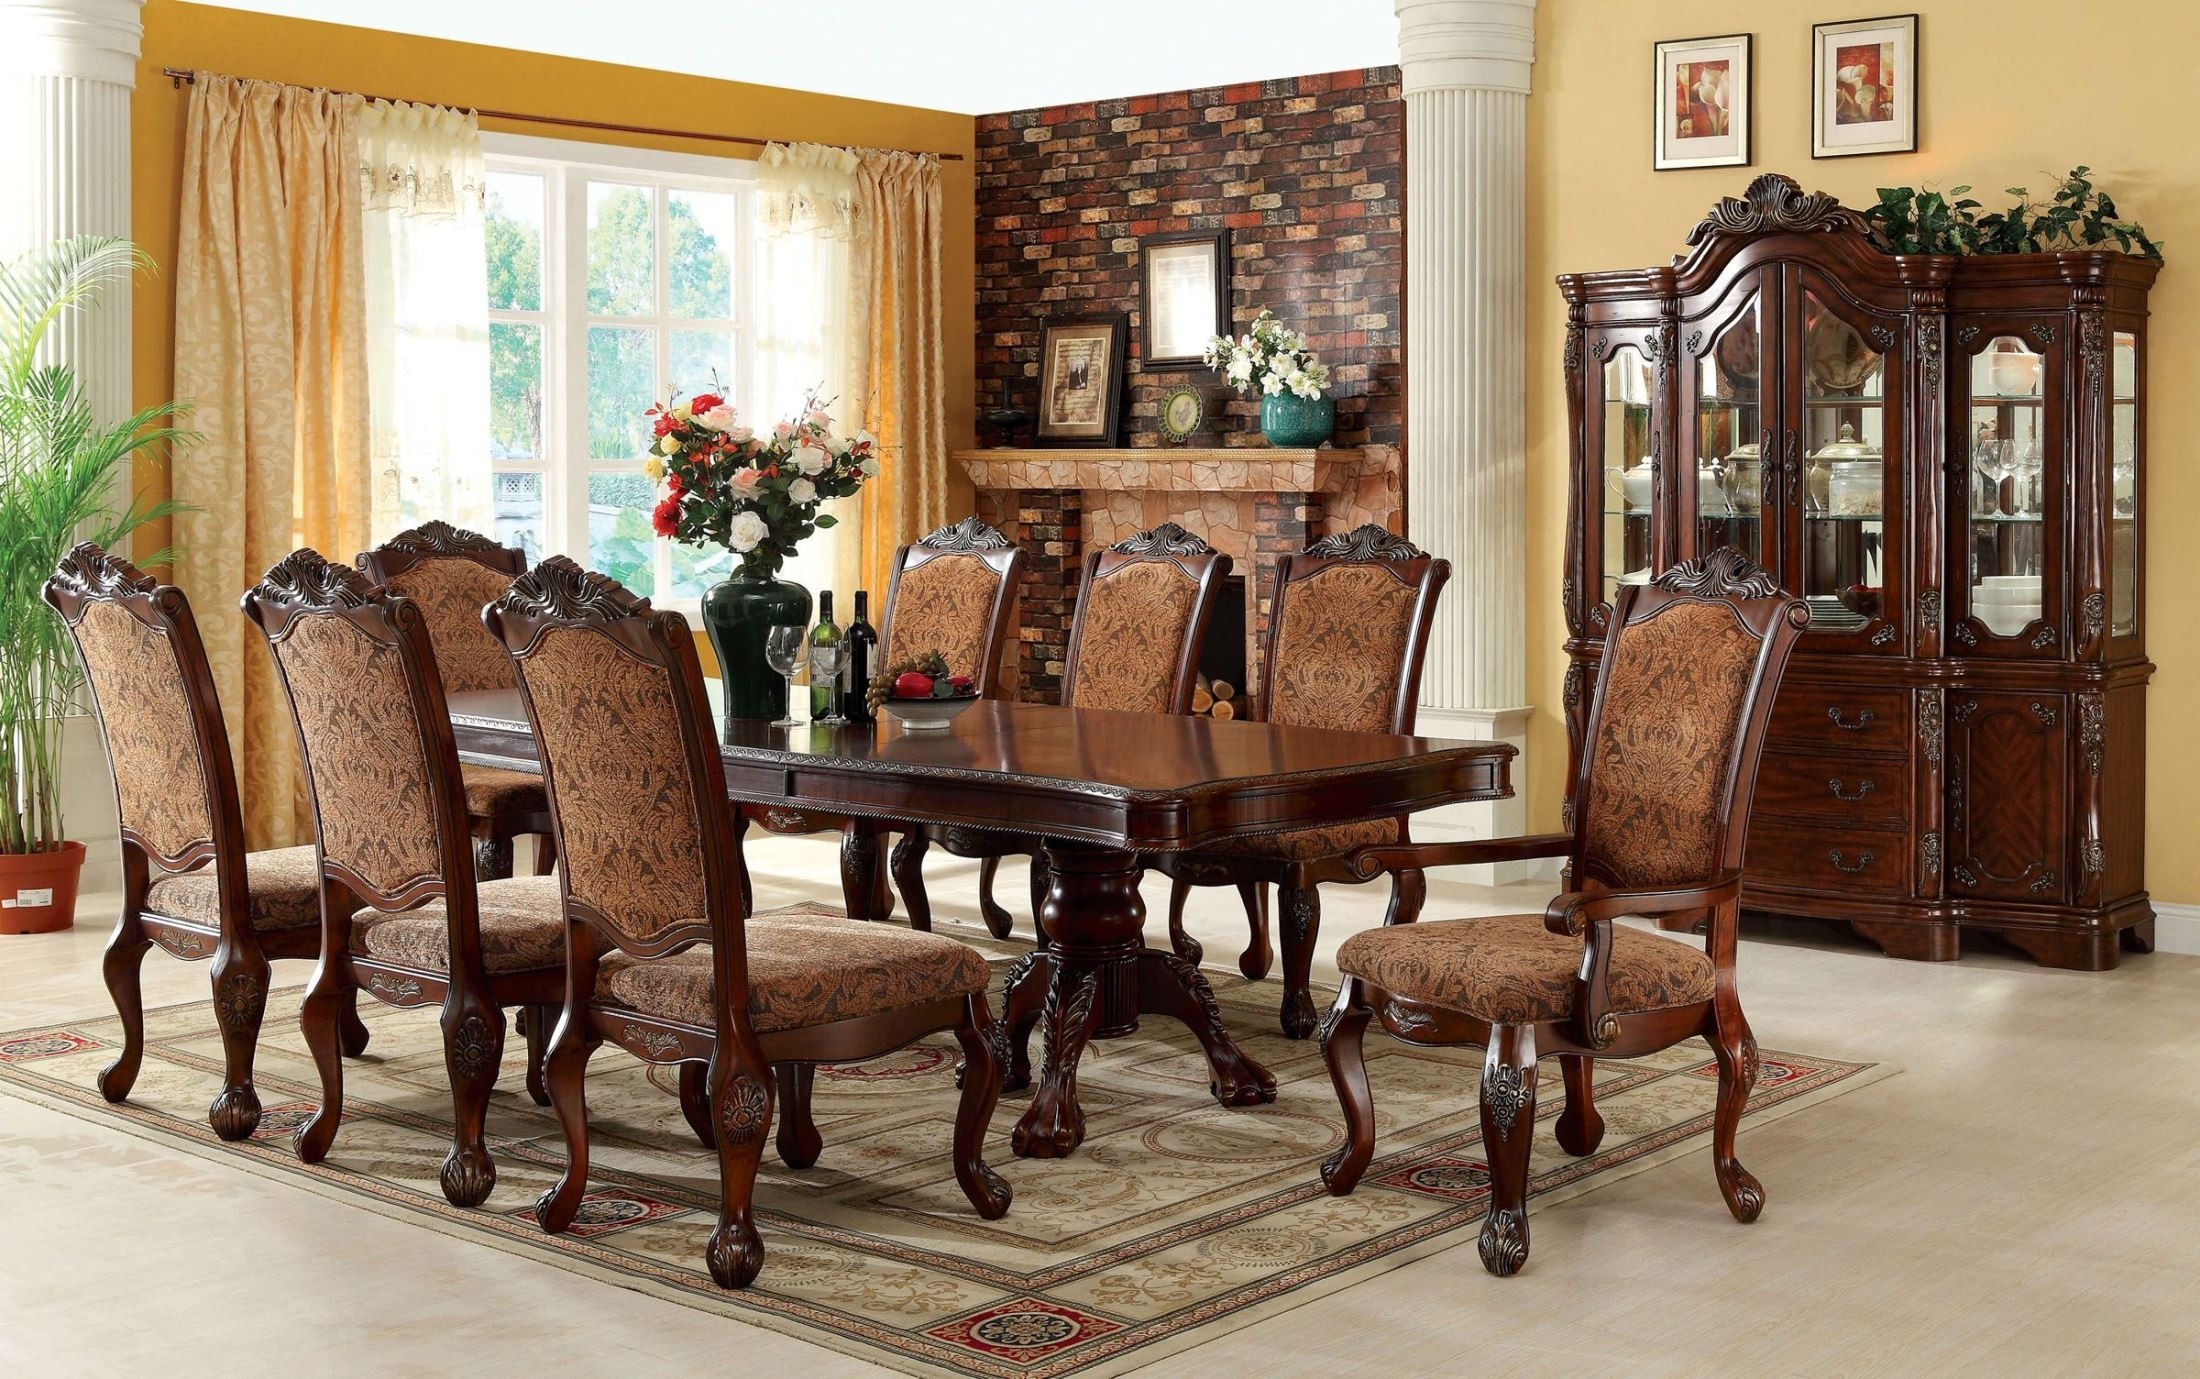 Cromwell antique cherry formal dining room set cm3103t for Dining room furniture images